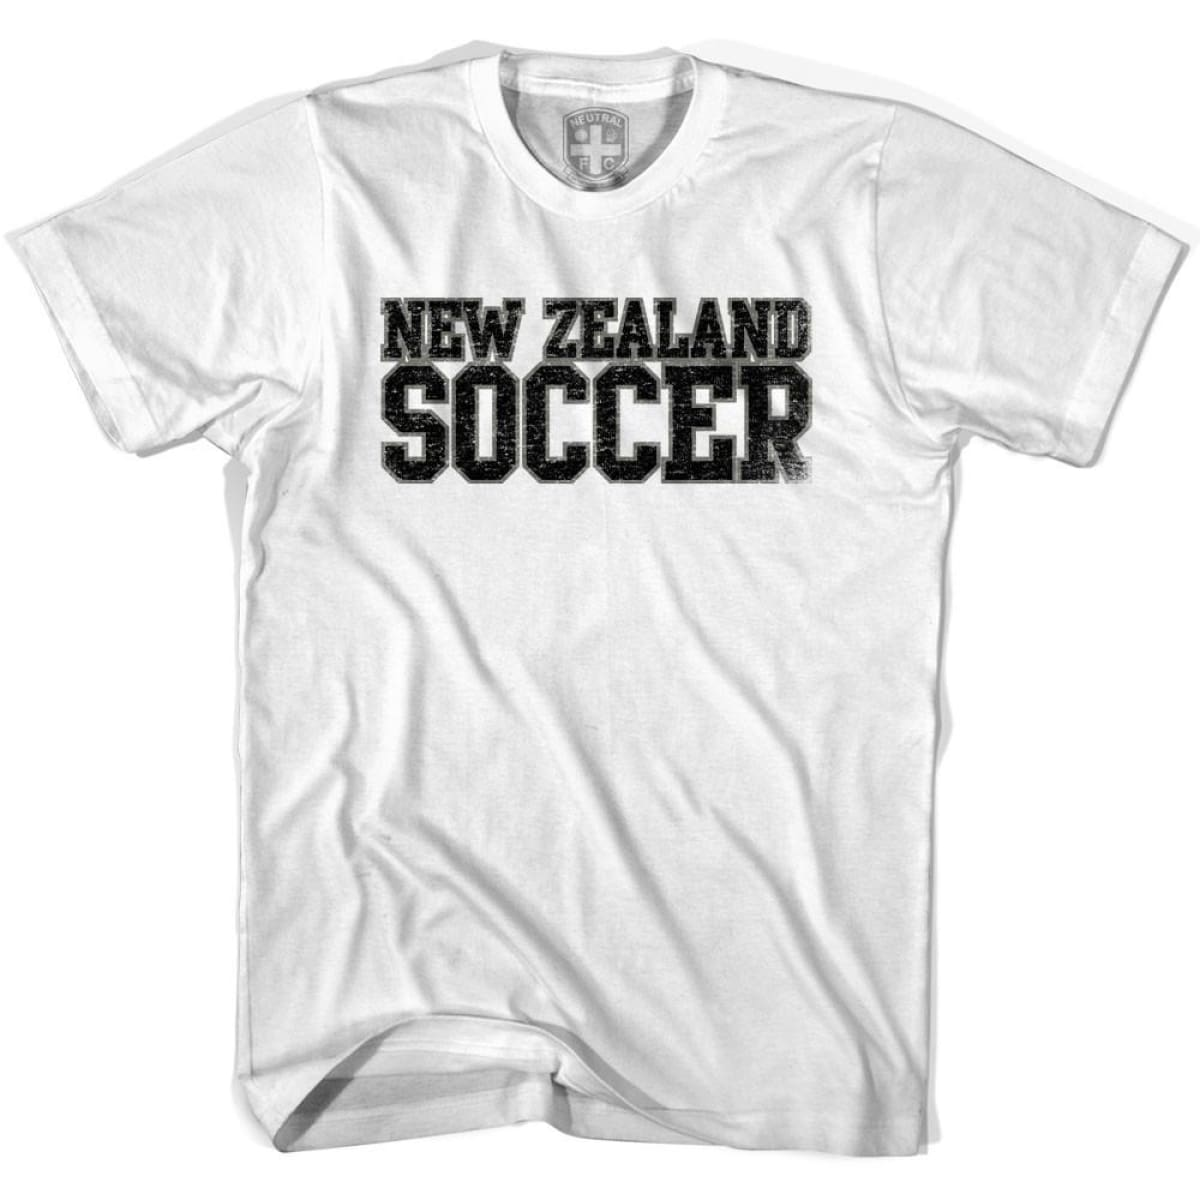 New Zealand Soccer Nations World Cup T-shirt - White / Youth X-Small - Ultras Soccer T-shirts